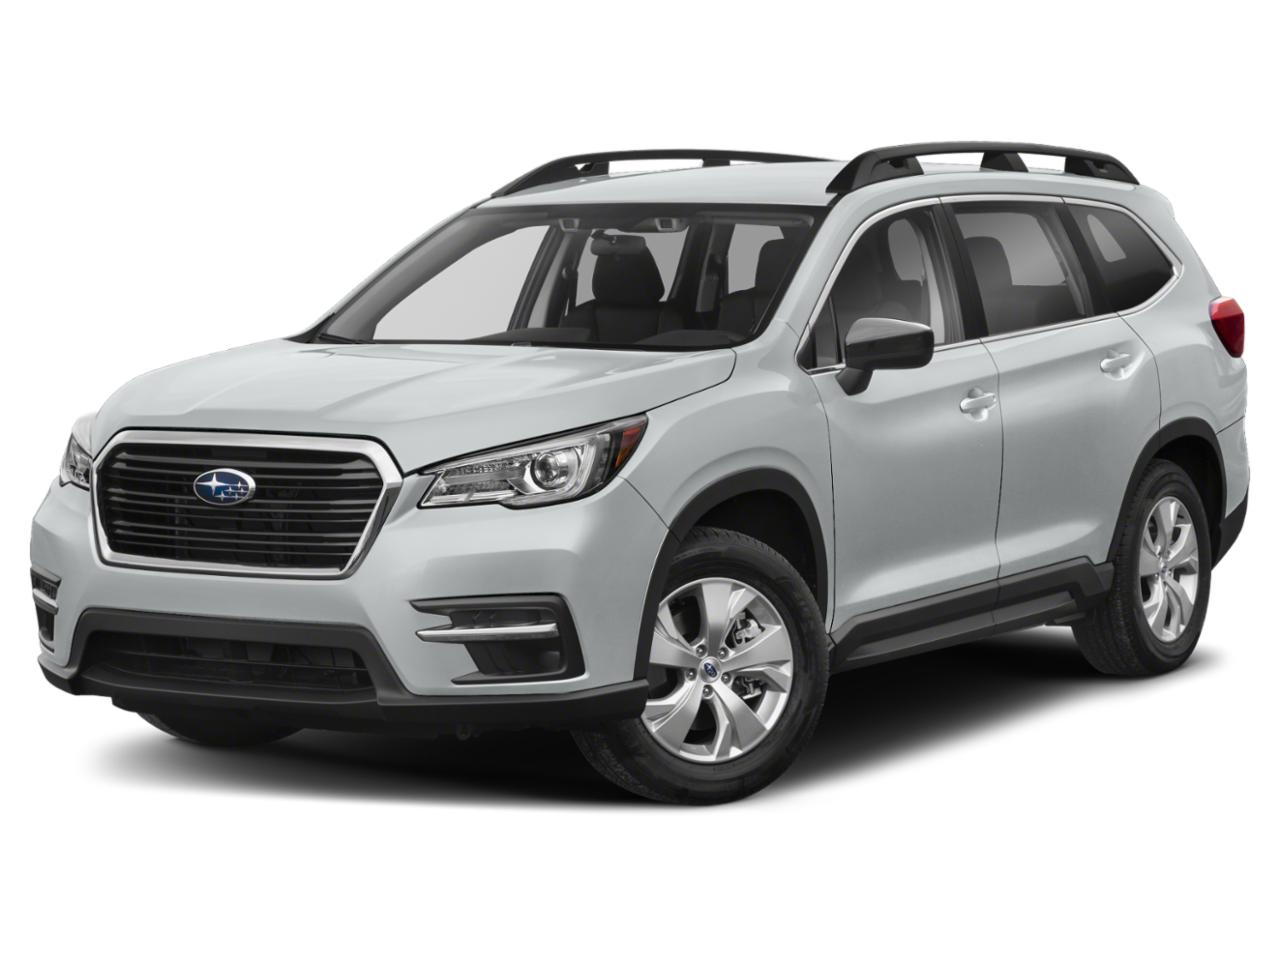 Used Subaru Ascent For Sale At Chevrolet Of Jersey City Chevy Dealer Near Manhattan Staten Island